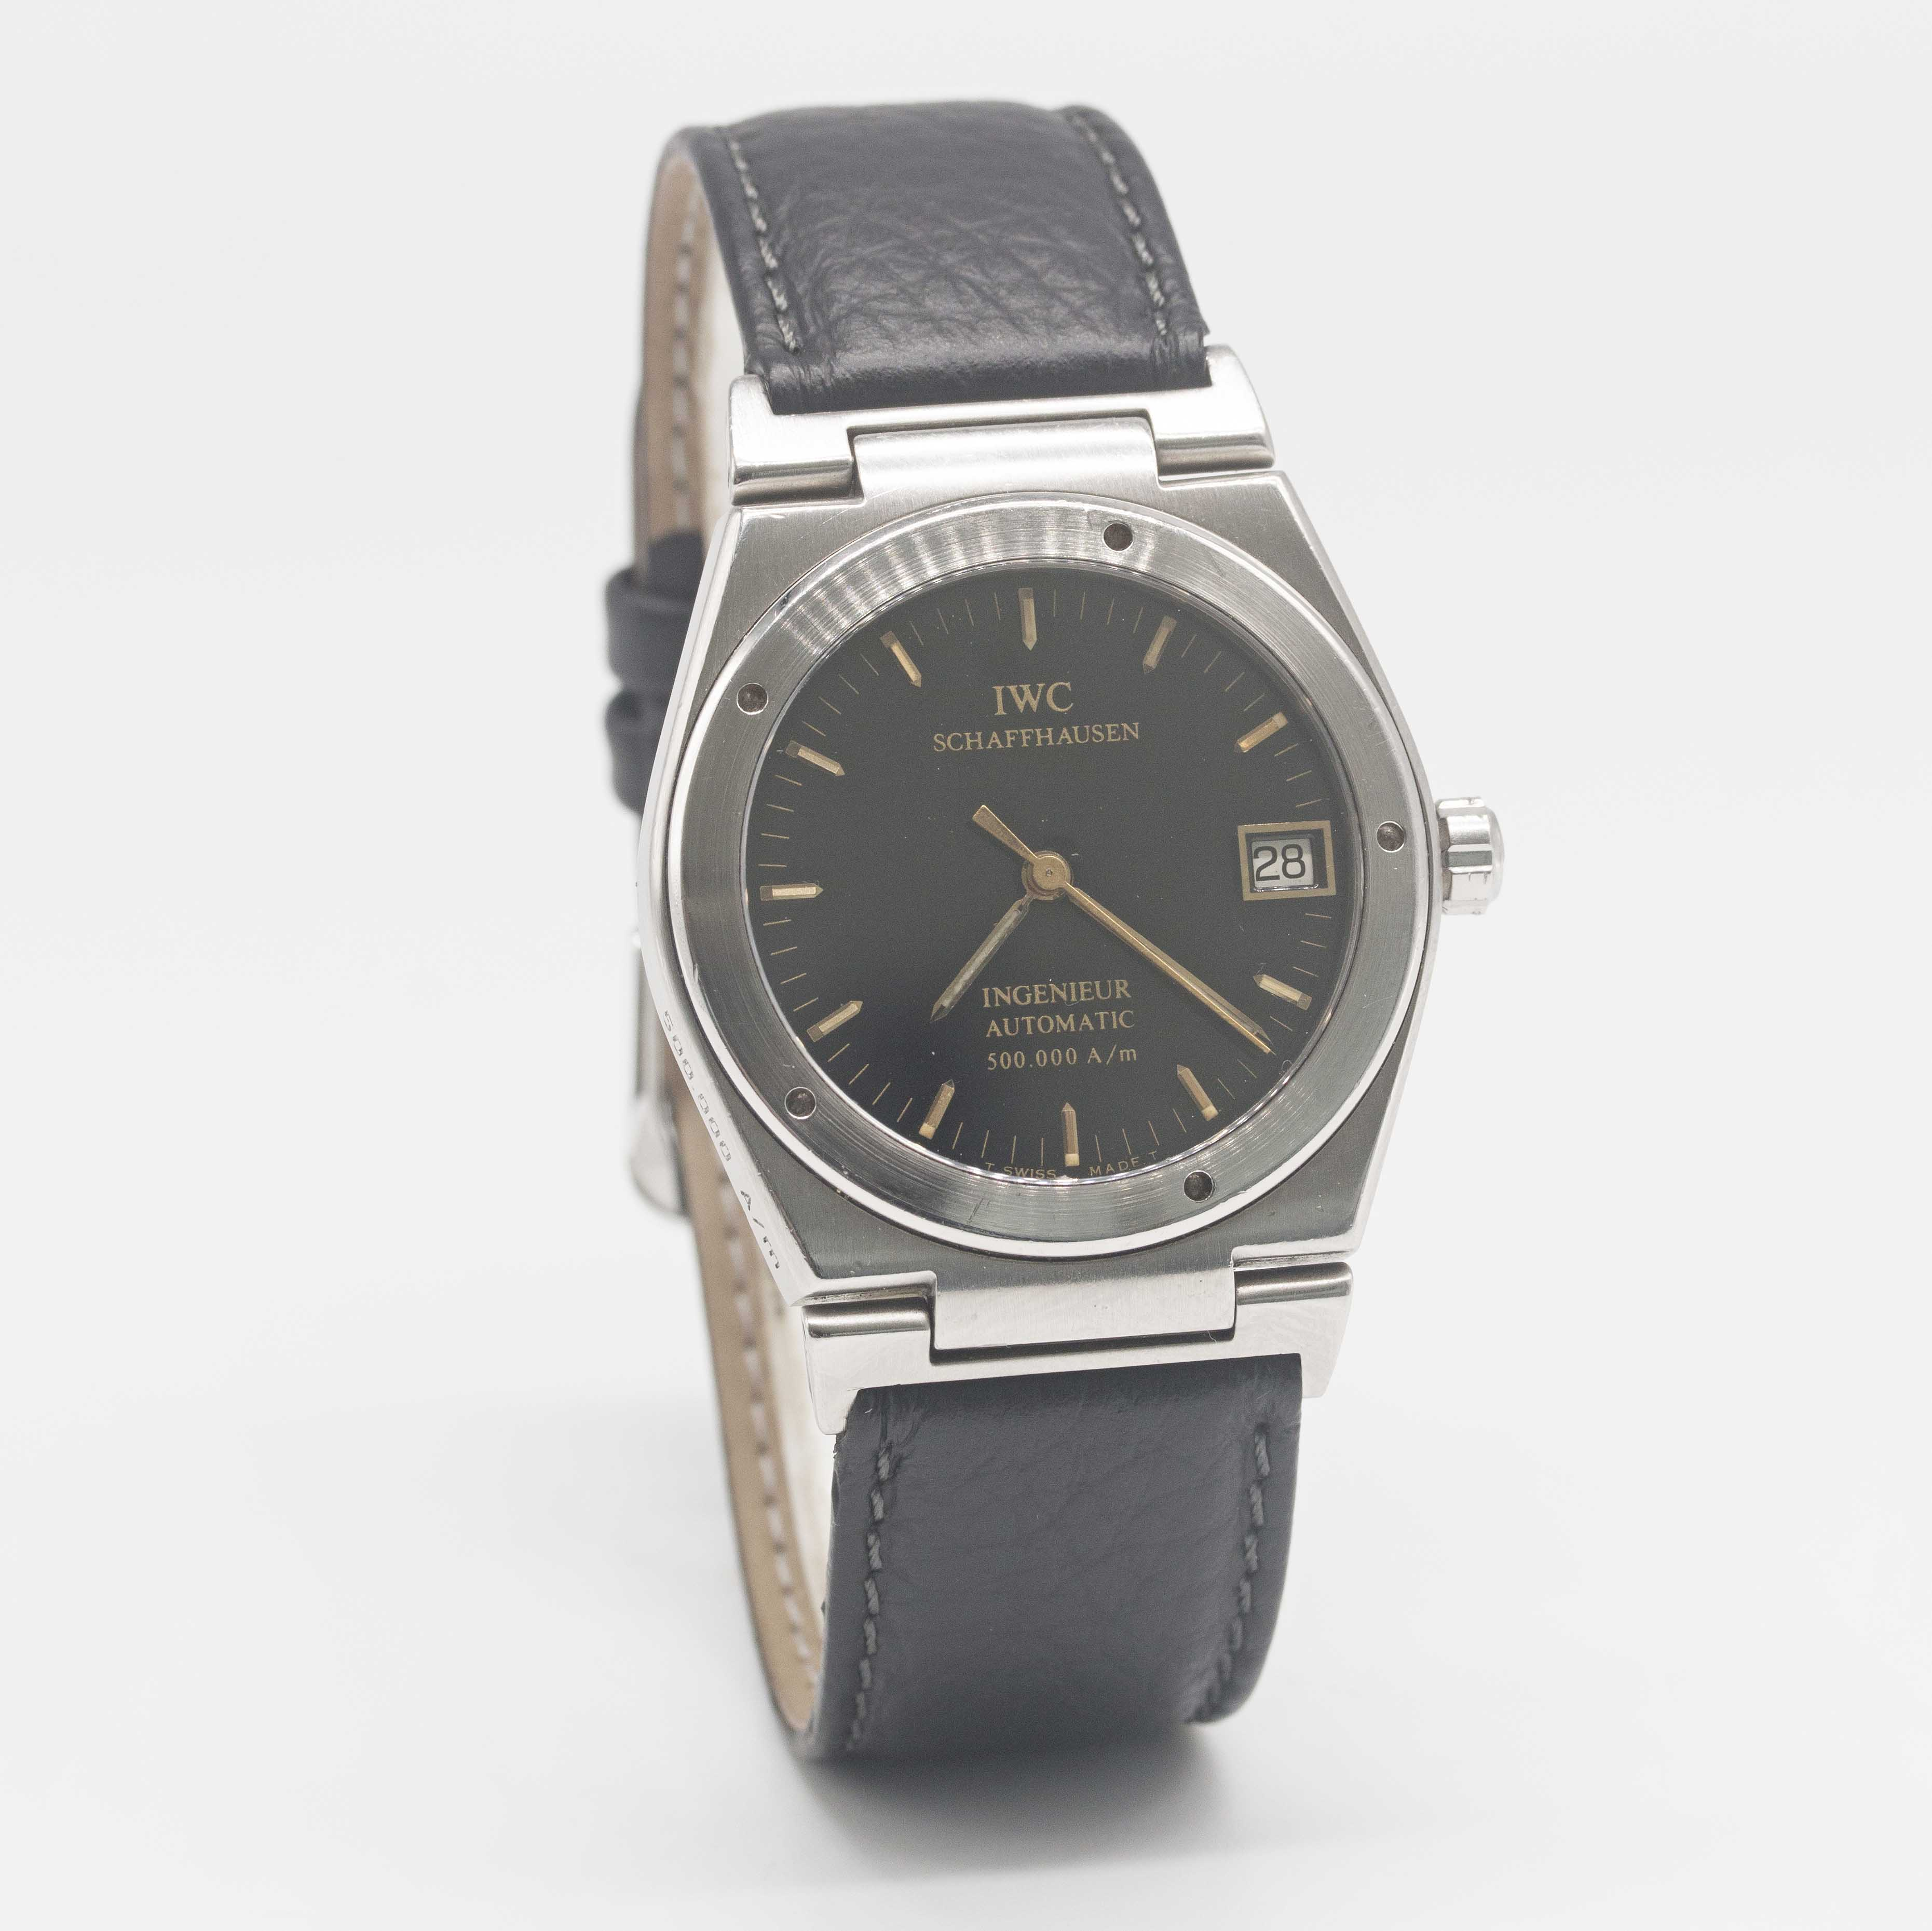 Lot 9 - A RARE GENTLEMAN'S STAINLESS STEEL IWC INGENIEUR AUTOMATIC 500.000 A/M WRIST WATCH CIRCA 1990,